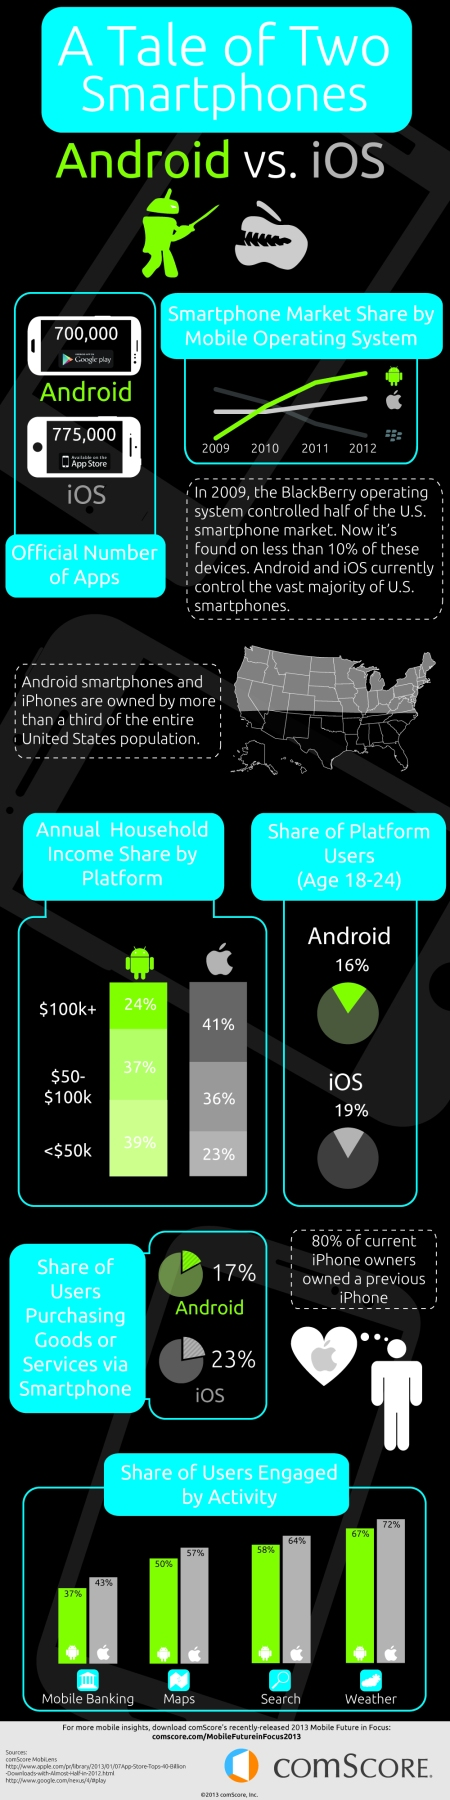 Android_vs_iOS_Infographic_1000x4000